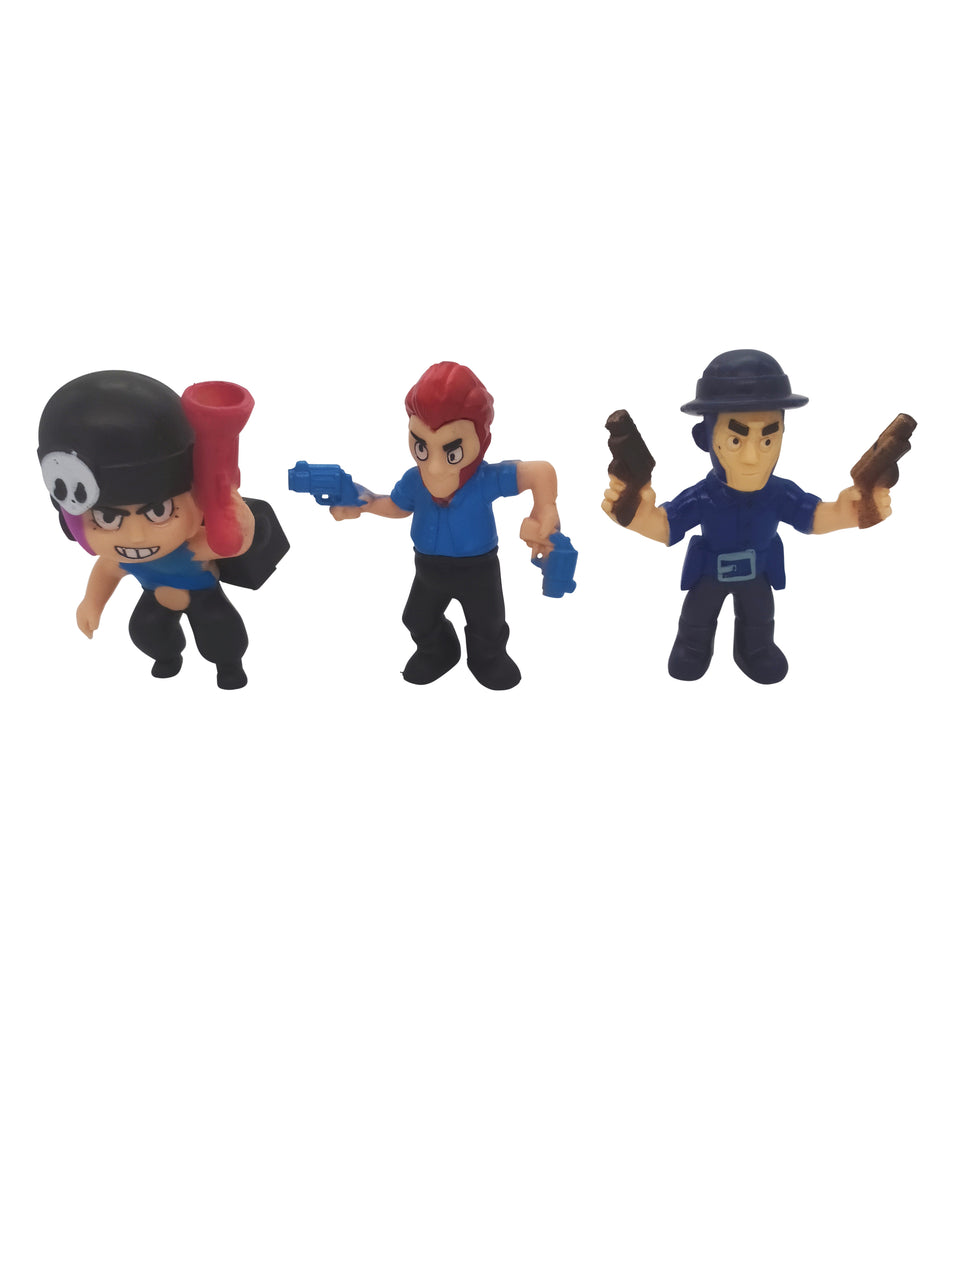 3 lot of figures from brawl stars - included : Colt , Penny